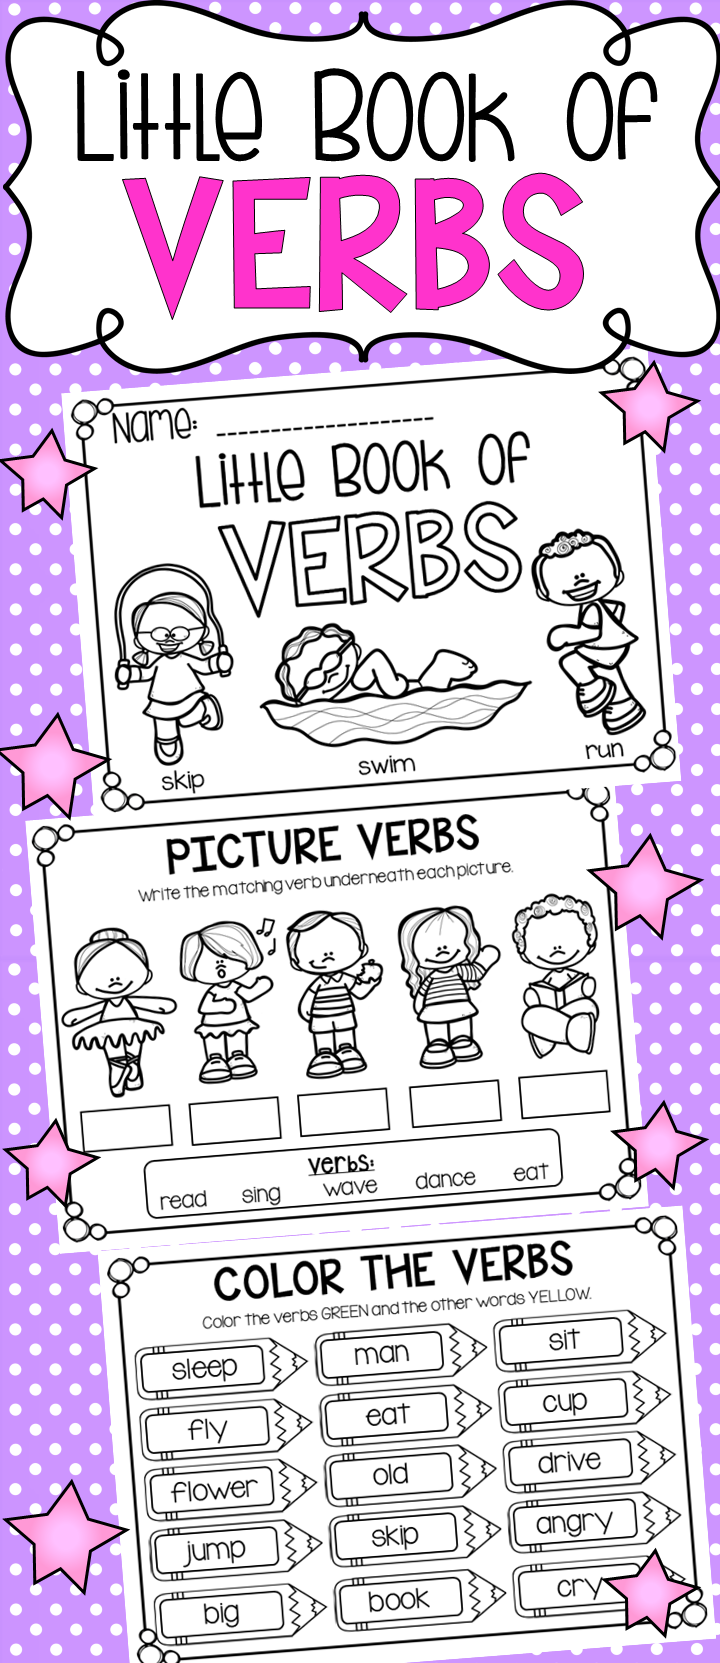 Little Book Of Verbs I Created This Little Book Of Verbs To Accompany My Verbs Unit It Is A Half Page Booklet Which Is 17 Nouns Nouns And Verbs Little Books [ 1663 x 720 Pixel ]